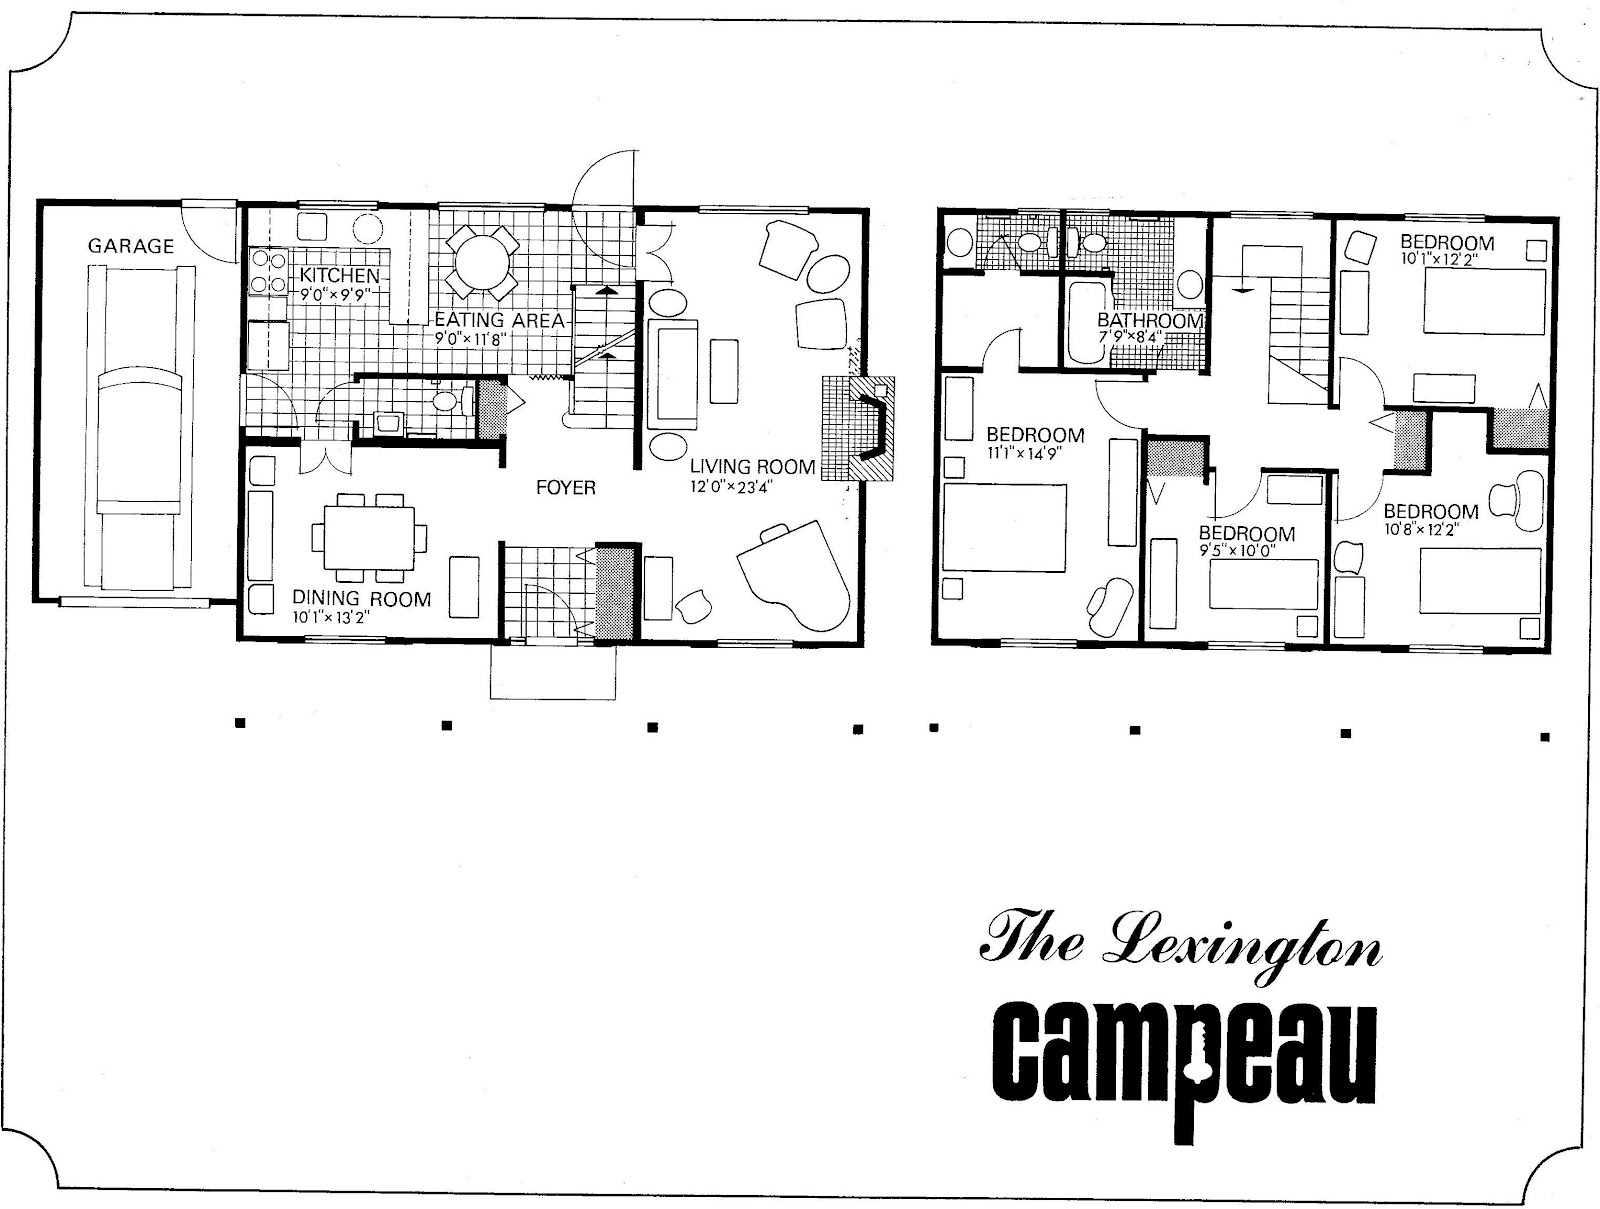 MidCentury Modern and 1970sEra Ottawa Evolution of a plan The